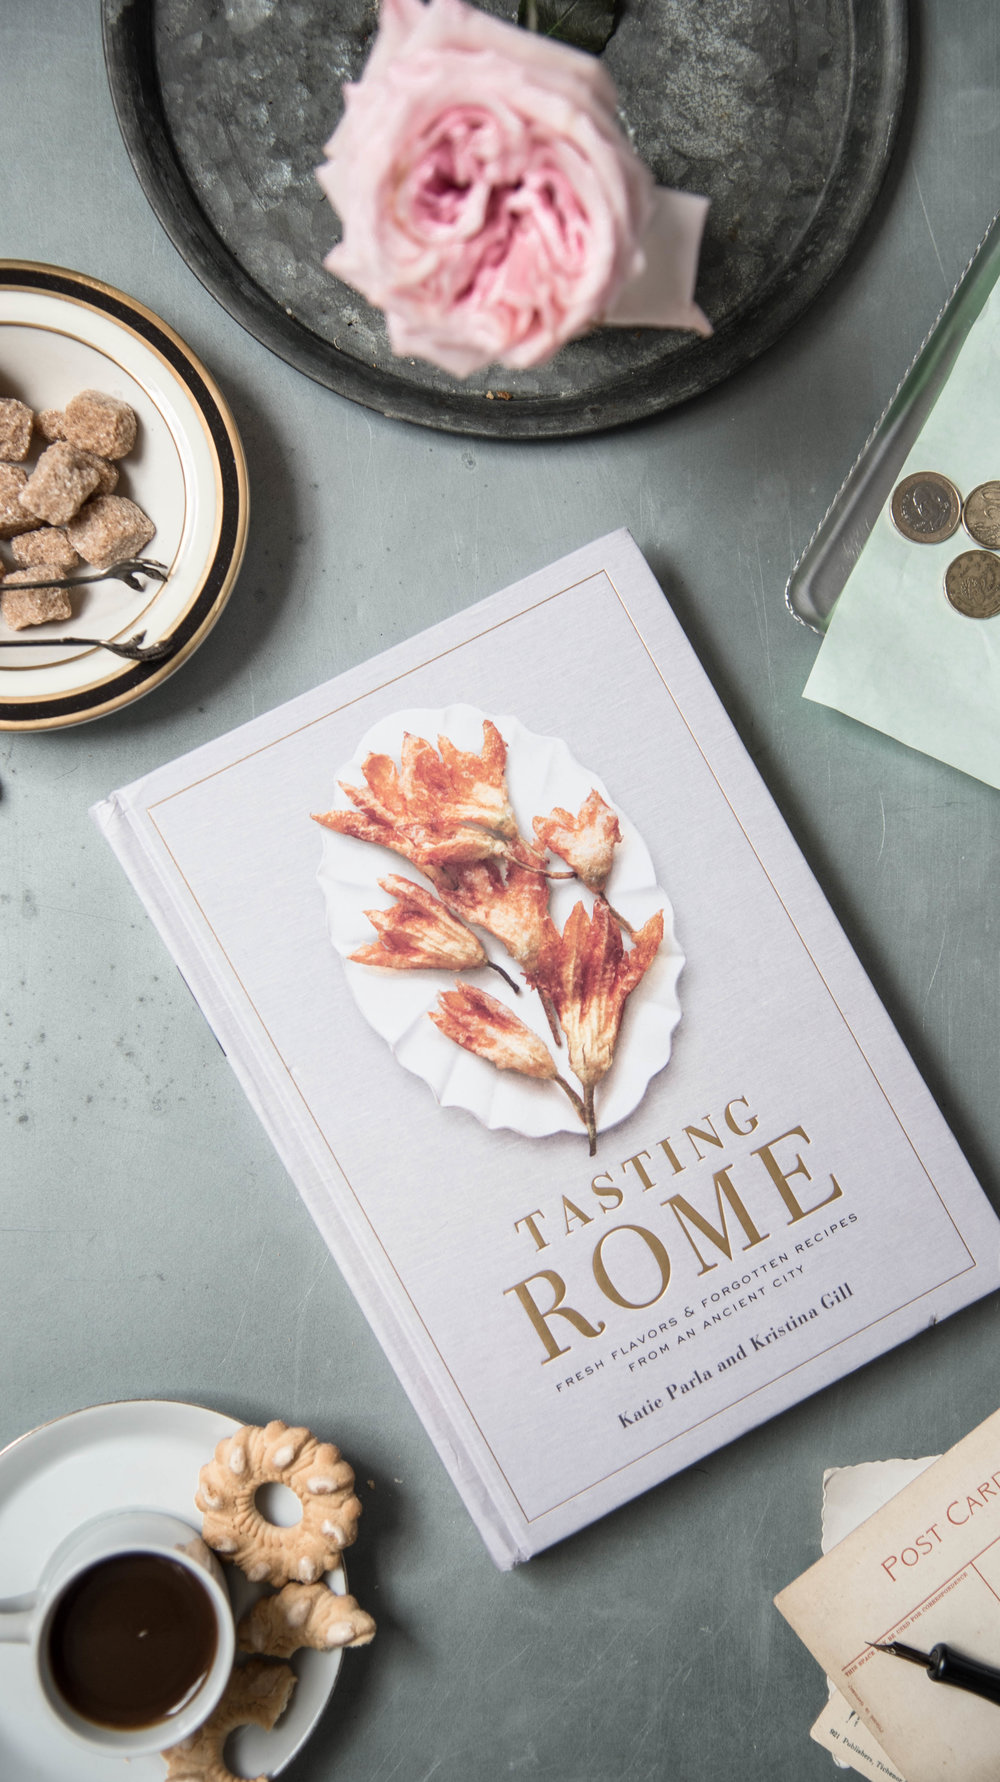 ROSE & IVY Journal New Cookbooks for Fall Tasting Rome